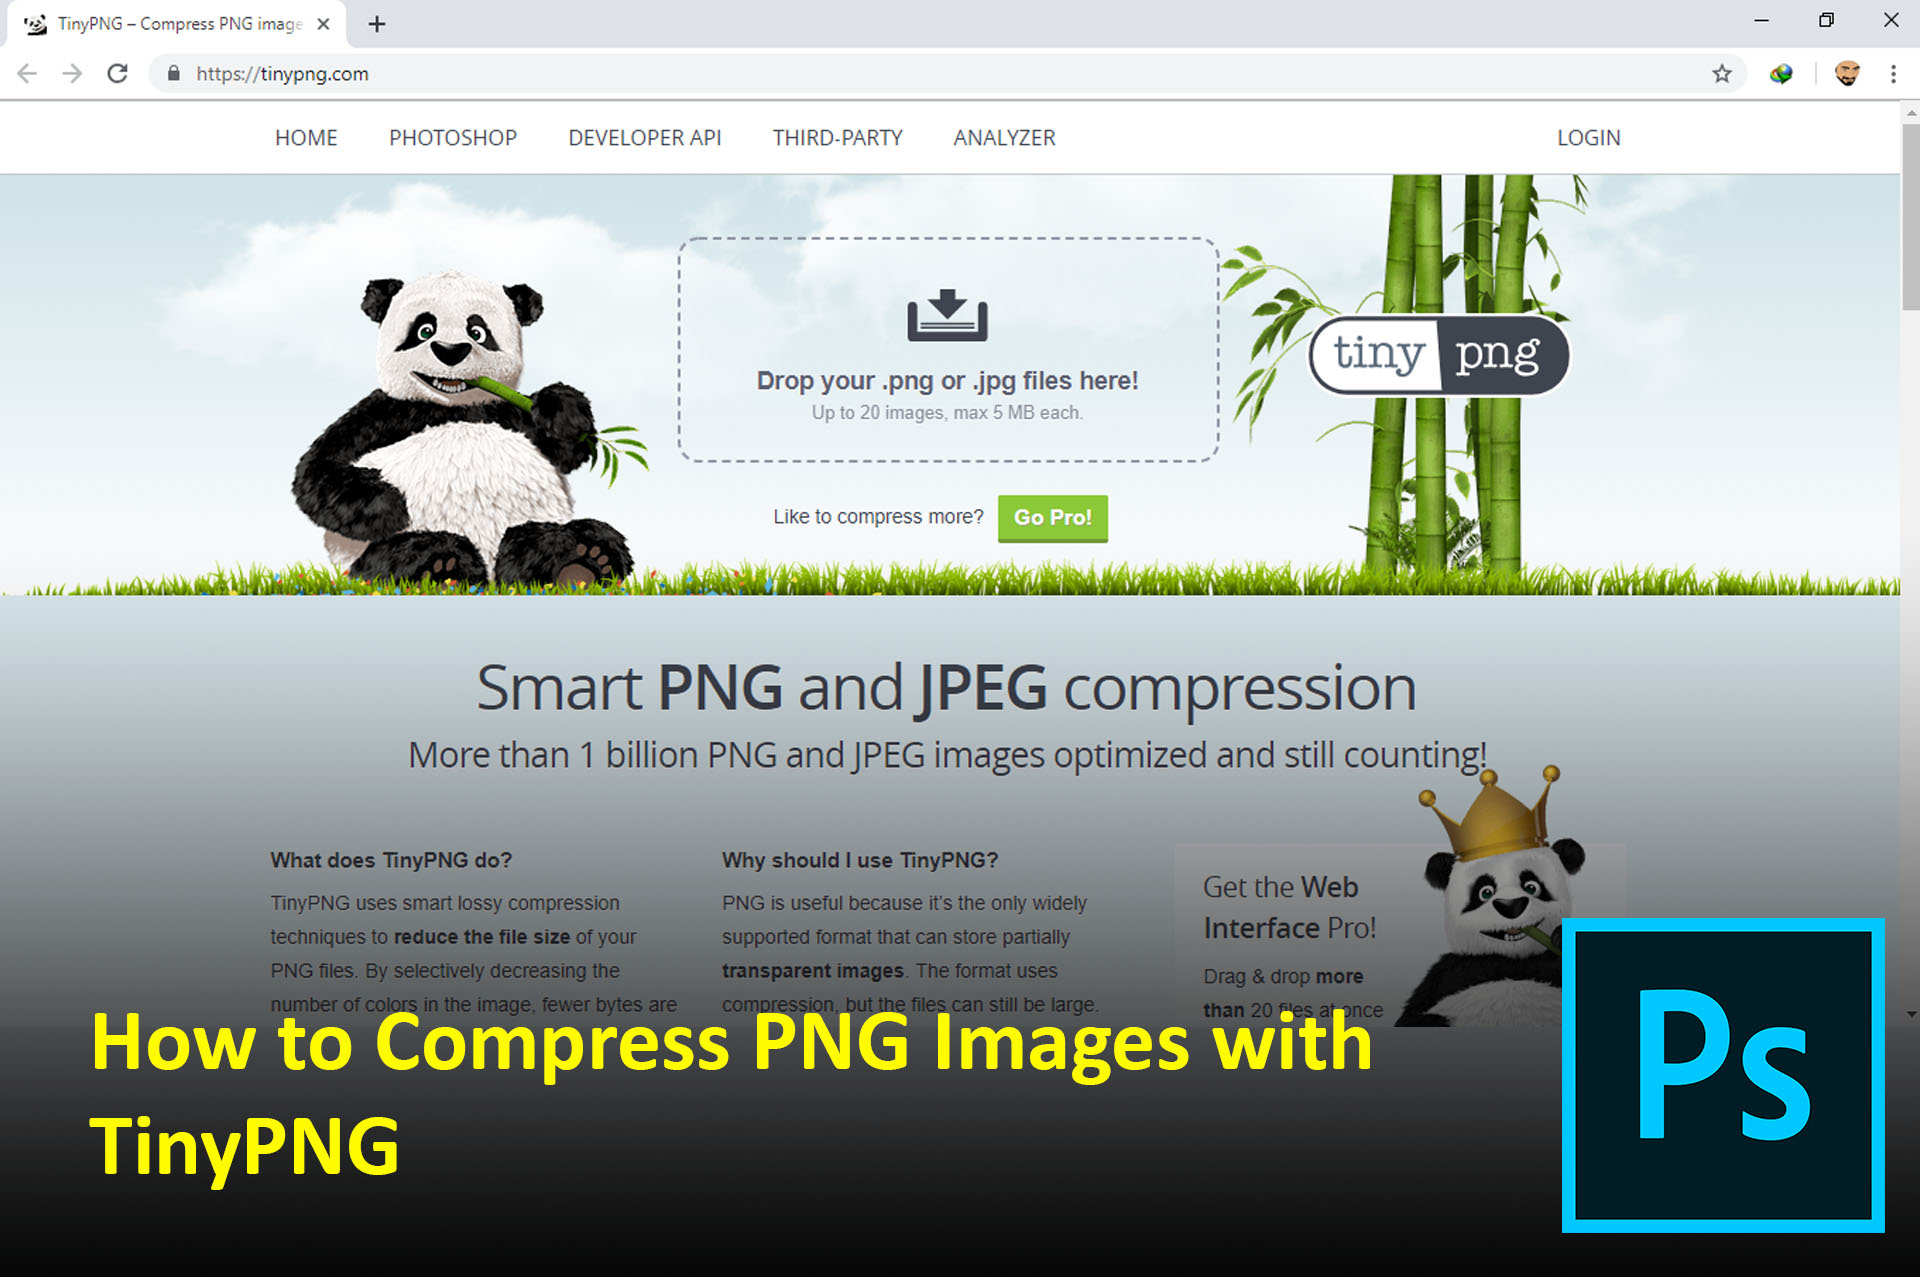 How to Compress PNG Images with TinyPNG.